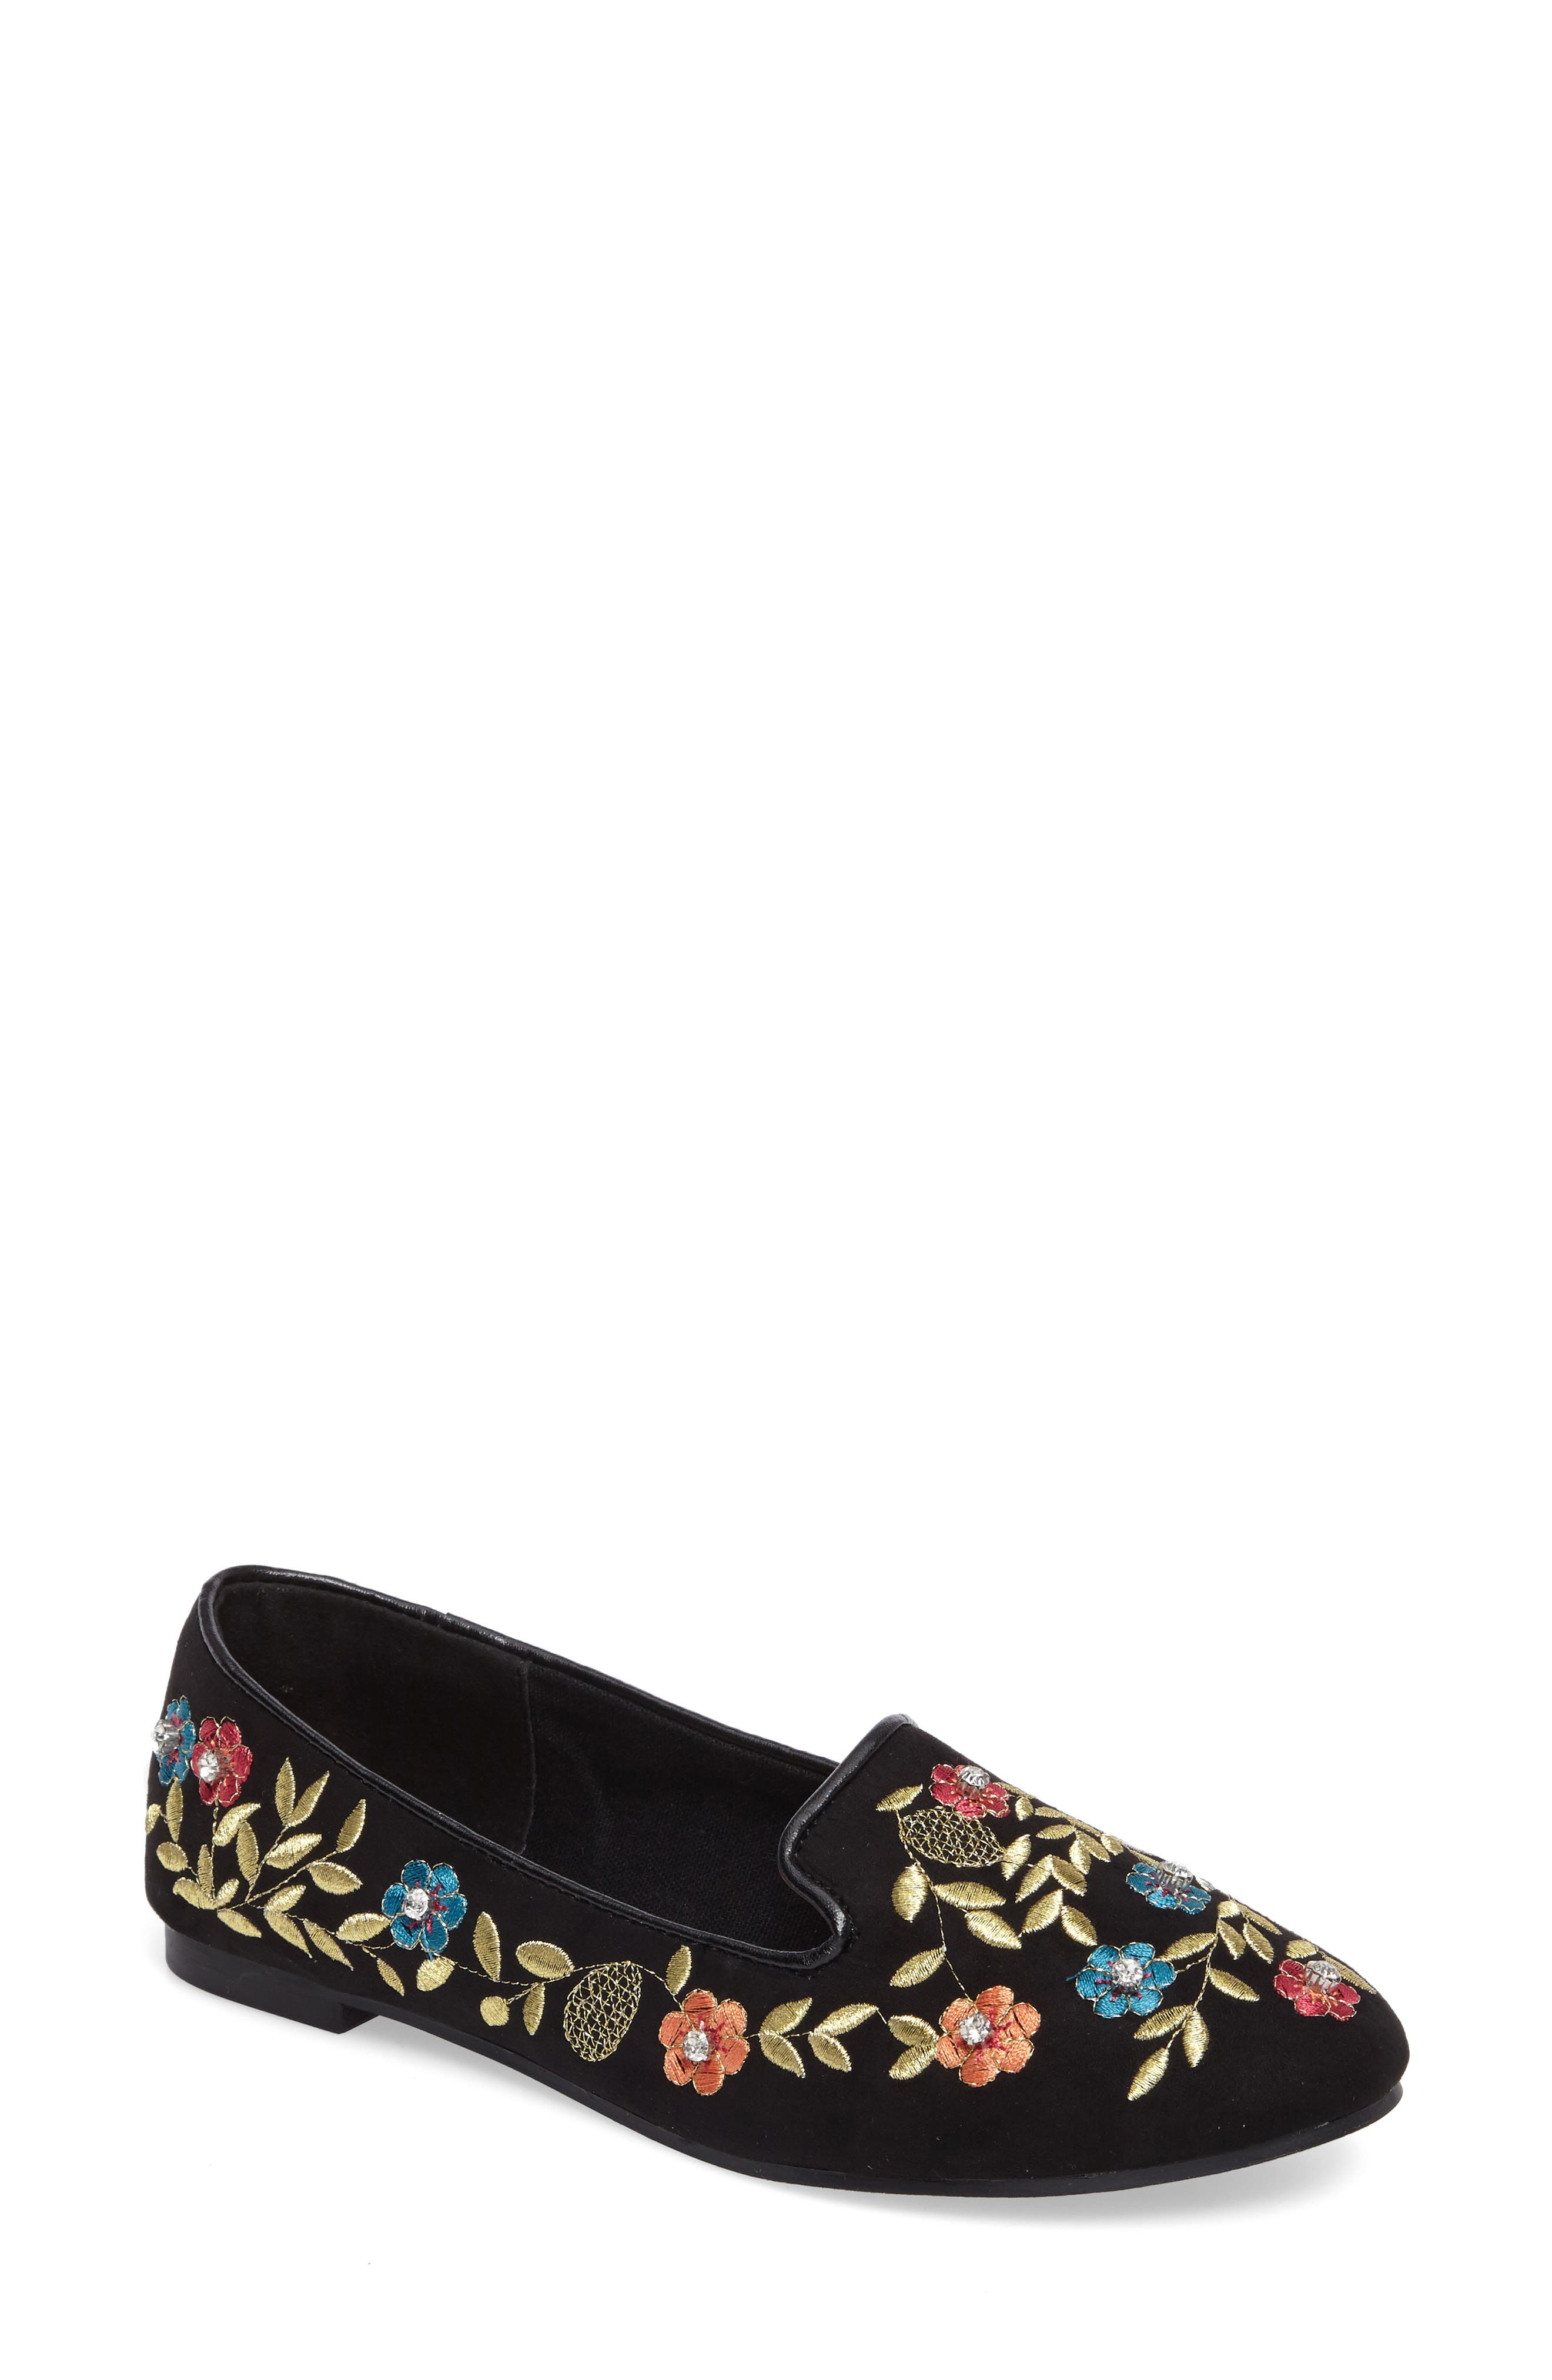 Sweetie Embroidered Loafer,                             Main thumbnail 1, color,                             001